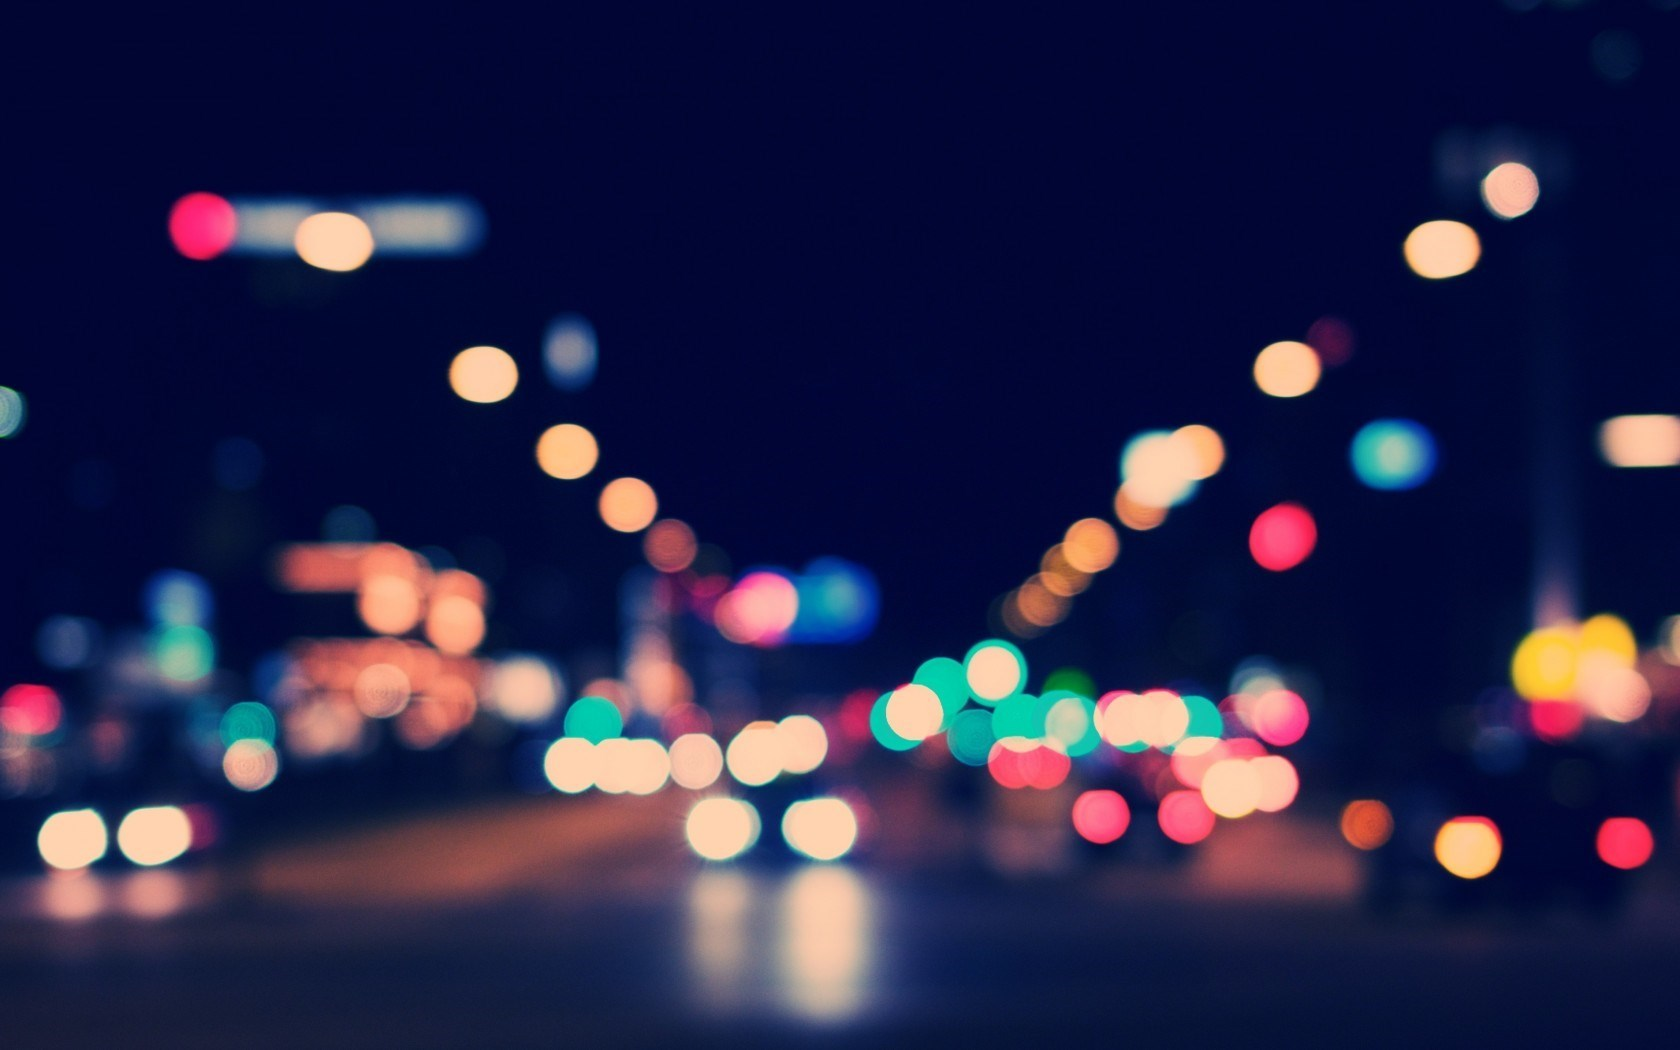 City Night Street Lights